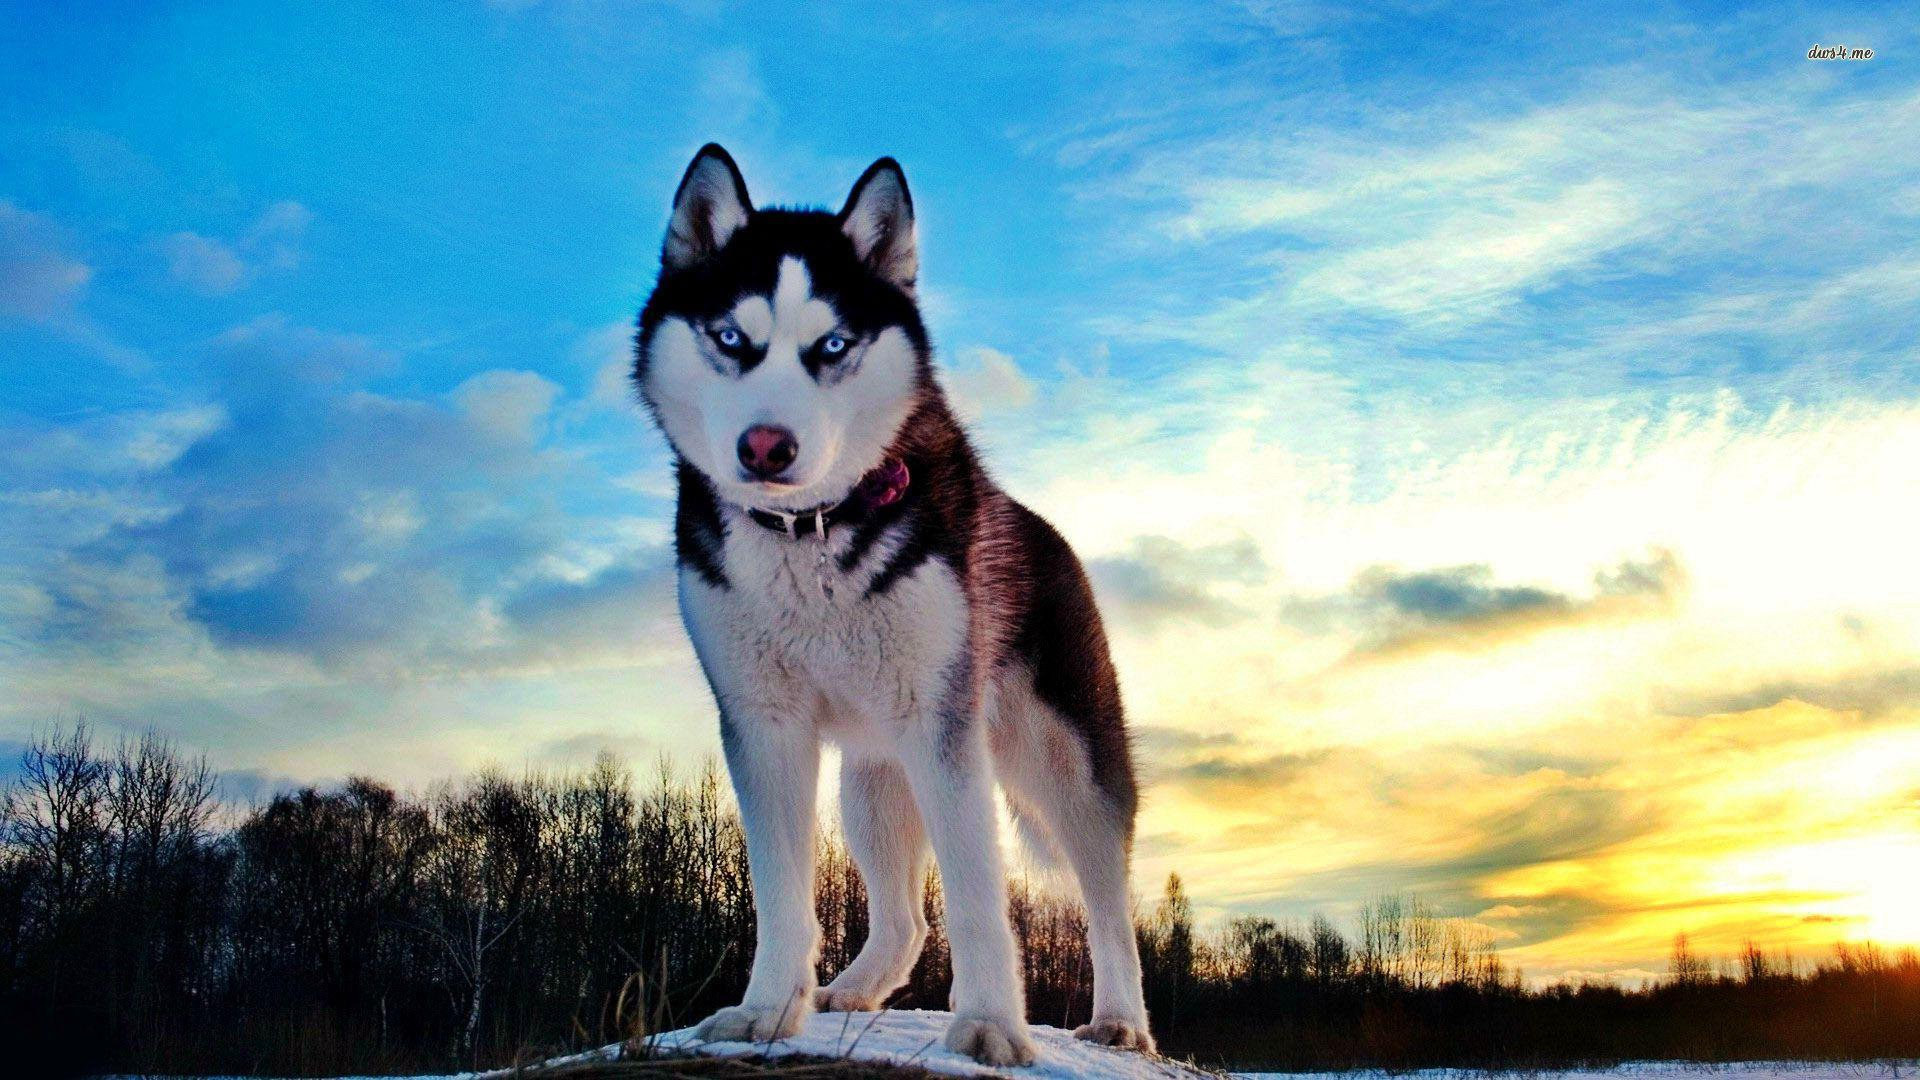 Cute Husky Puppies With Blue Eyes Wallpaper Baby Husky Wallpapers Wallpaper Cave